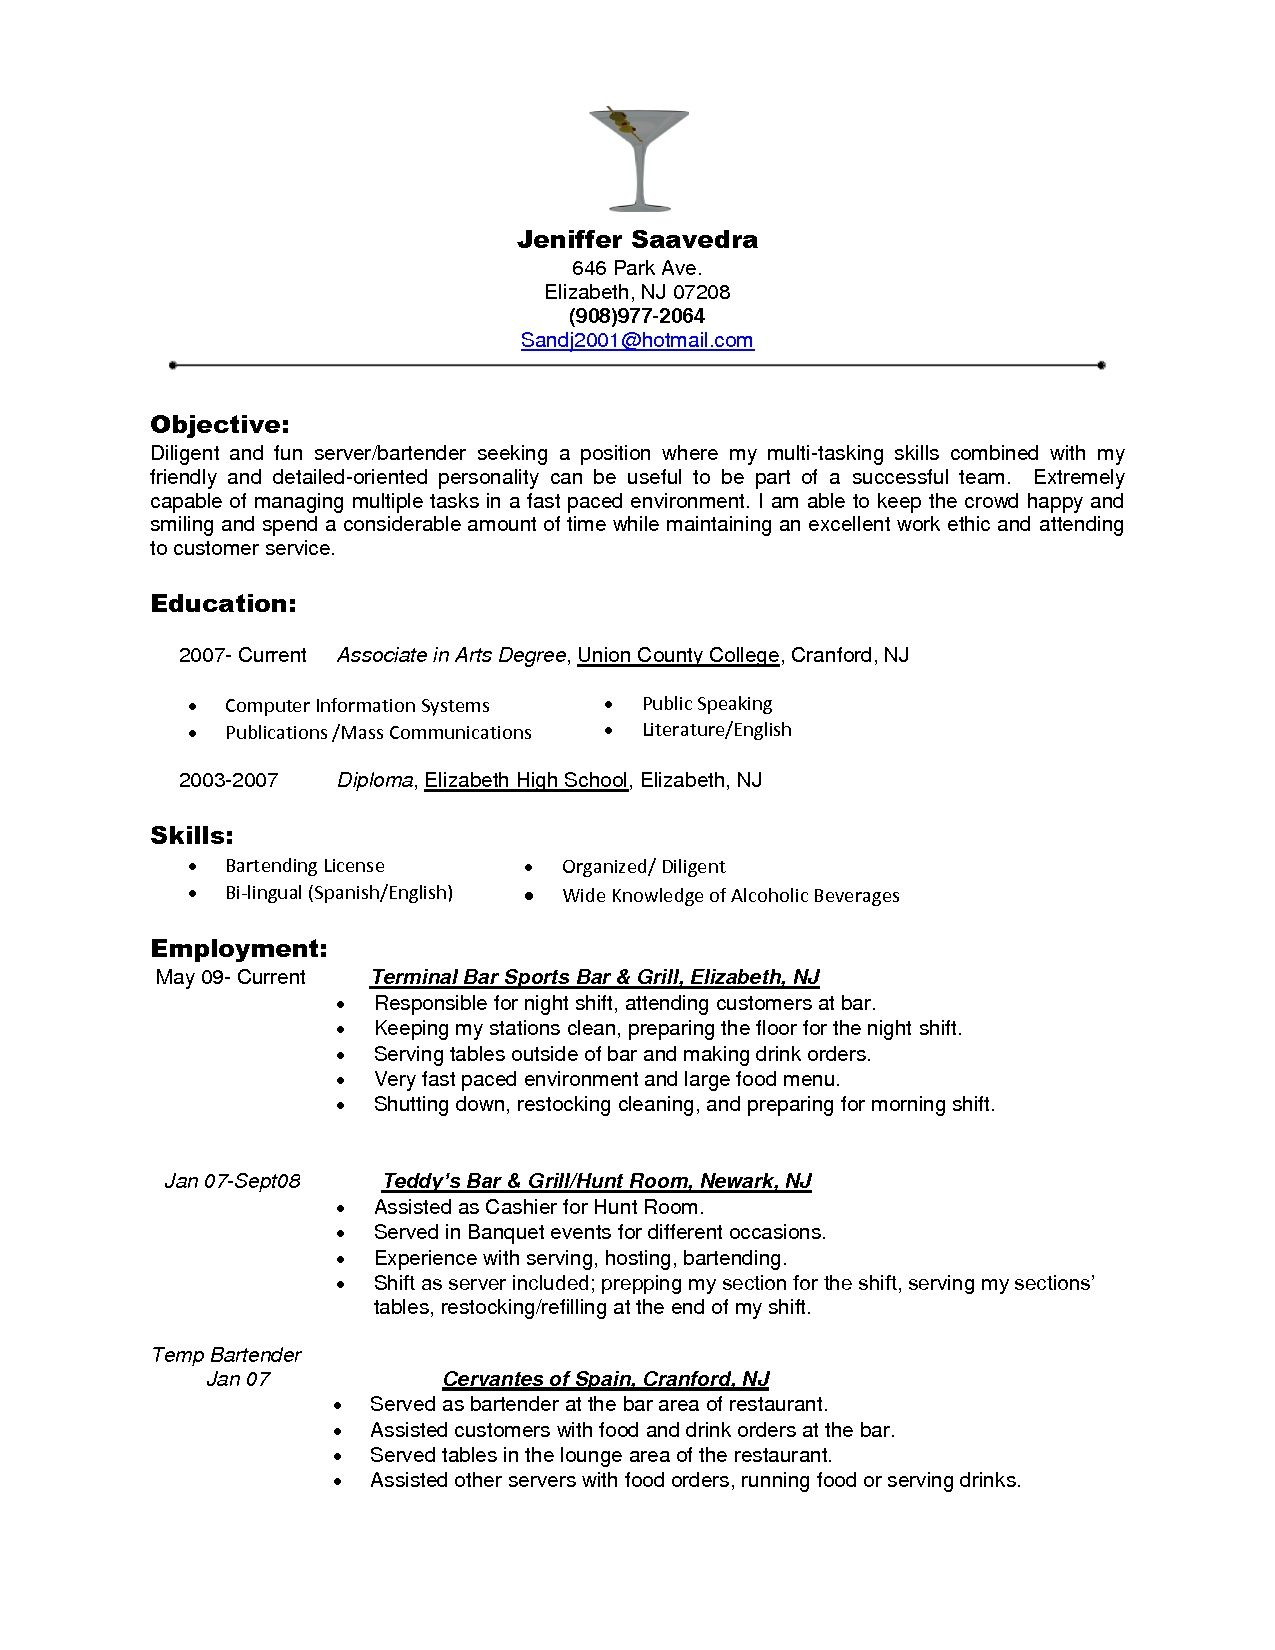 Resume For Bartender Bartender Objectives Resume  Bartender Objectives Resume Will